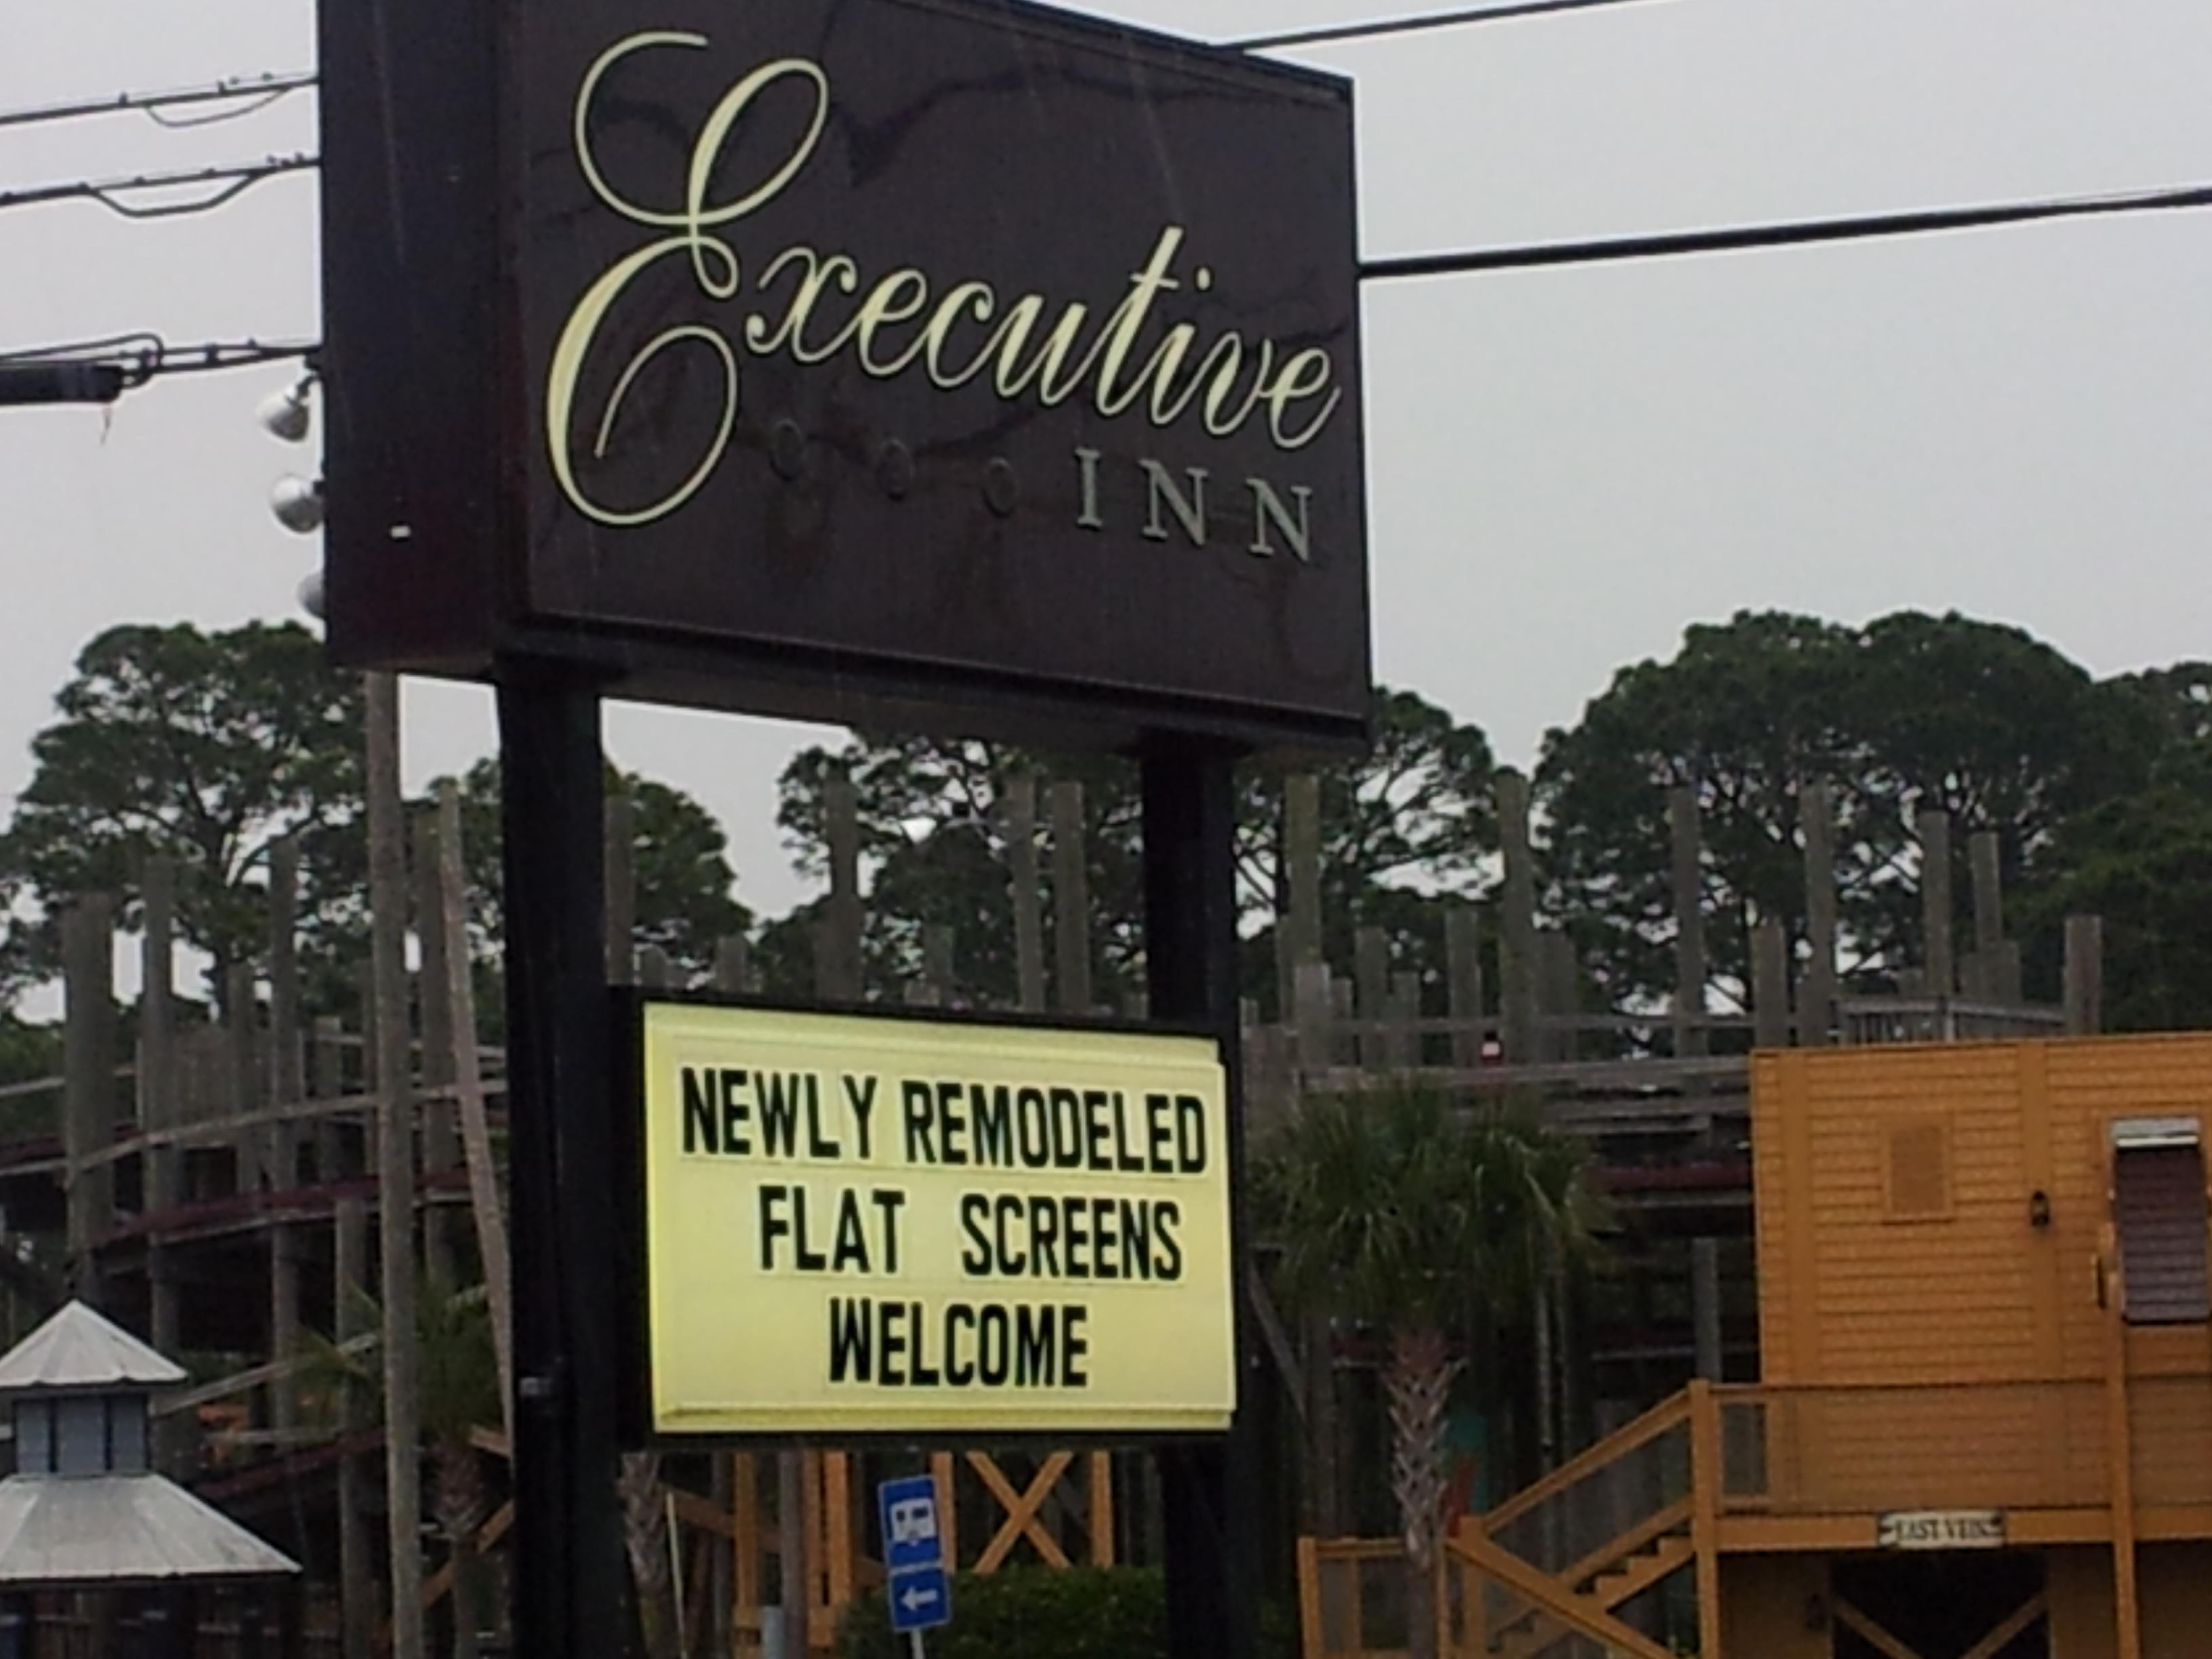 Executive Inn Panama City Beach